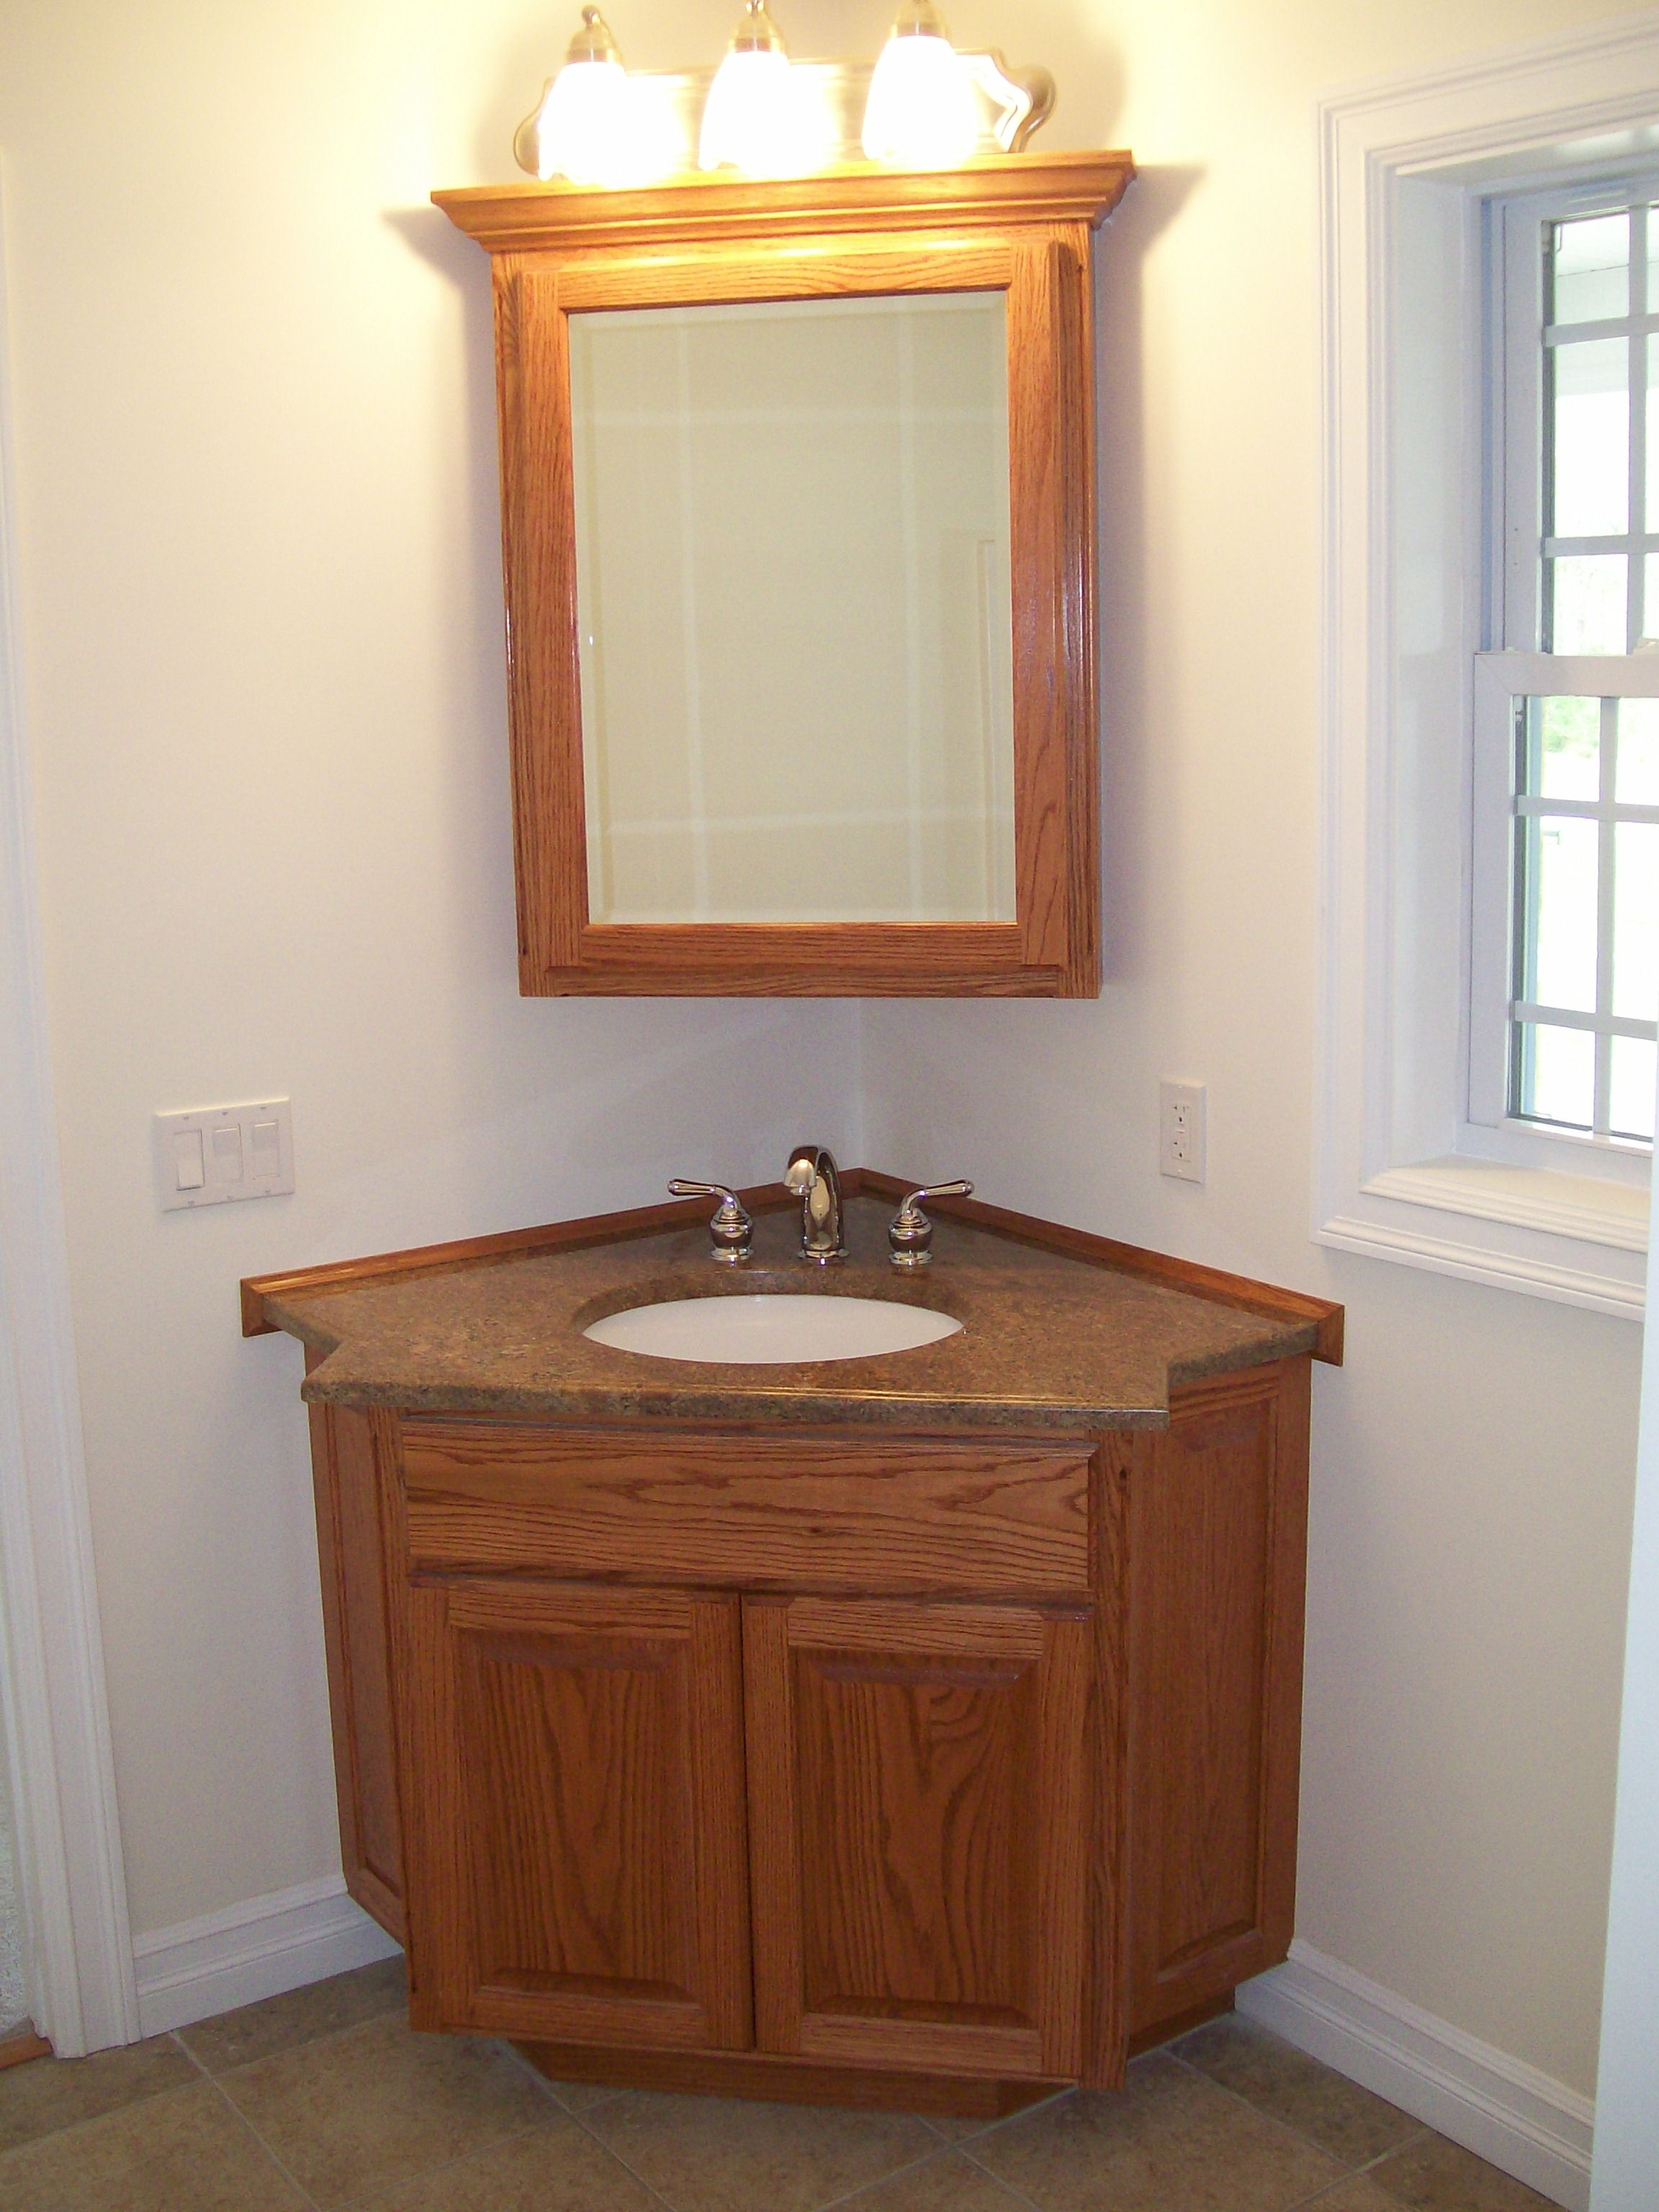 25 Incredible Vanities For Small Bathrooms With Examples